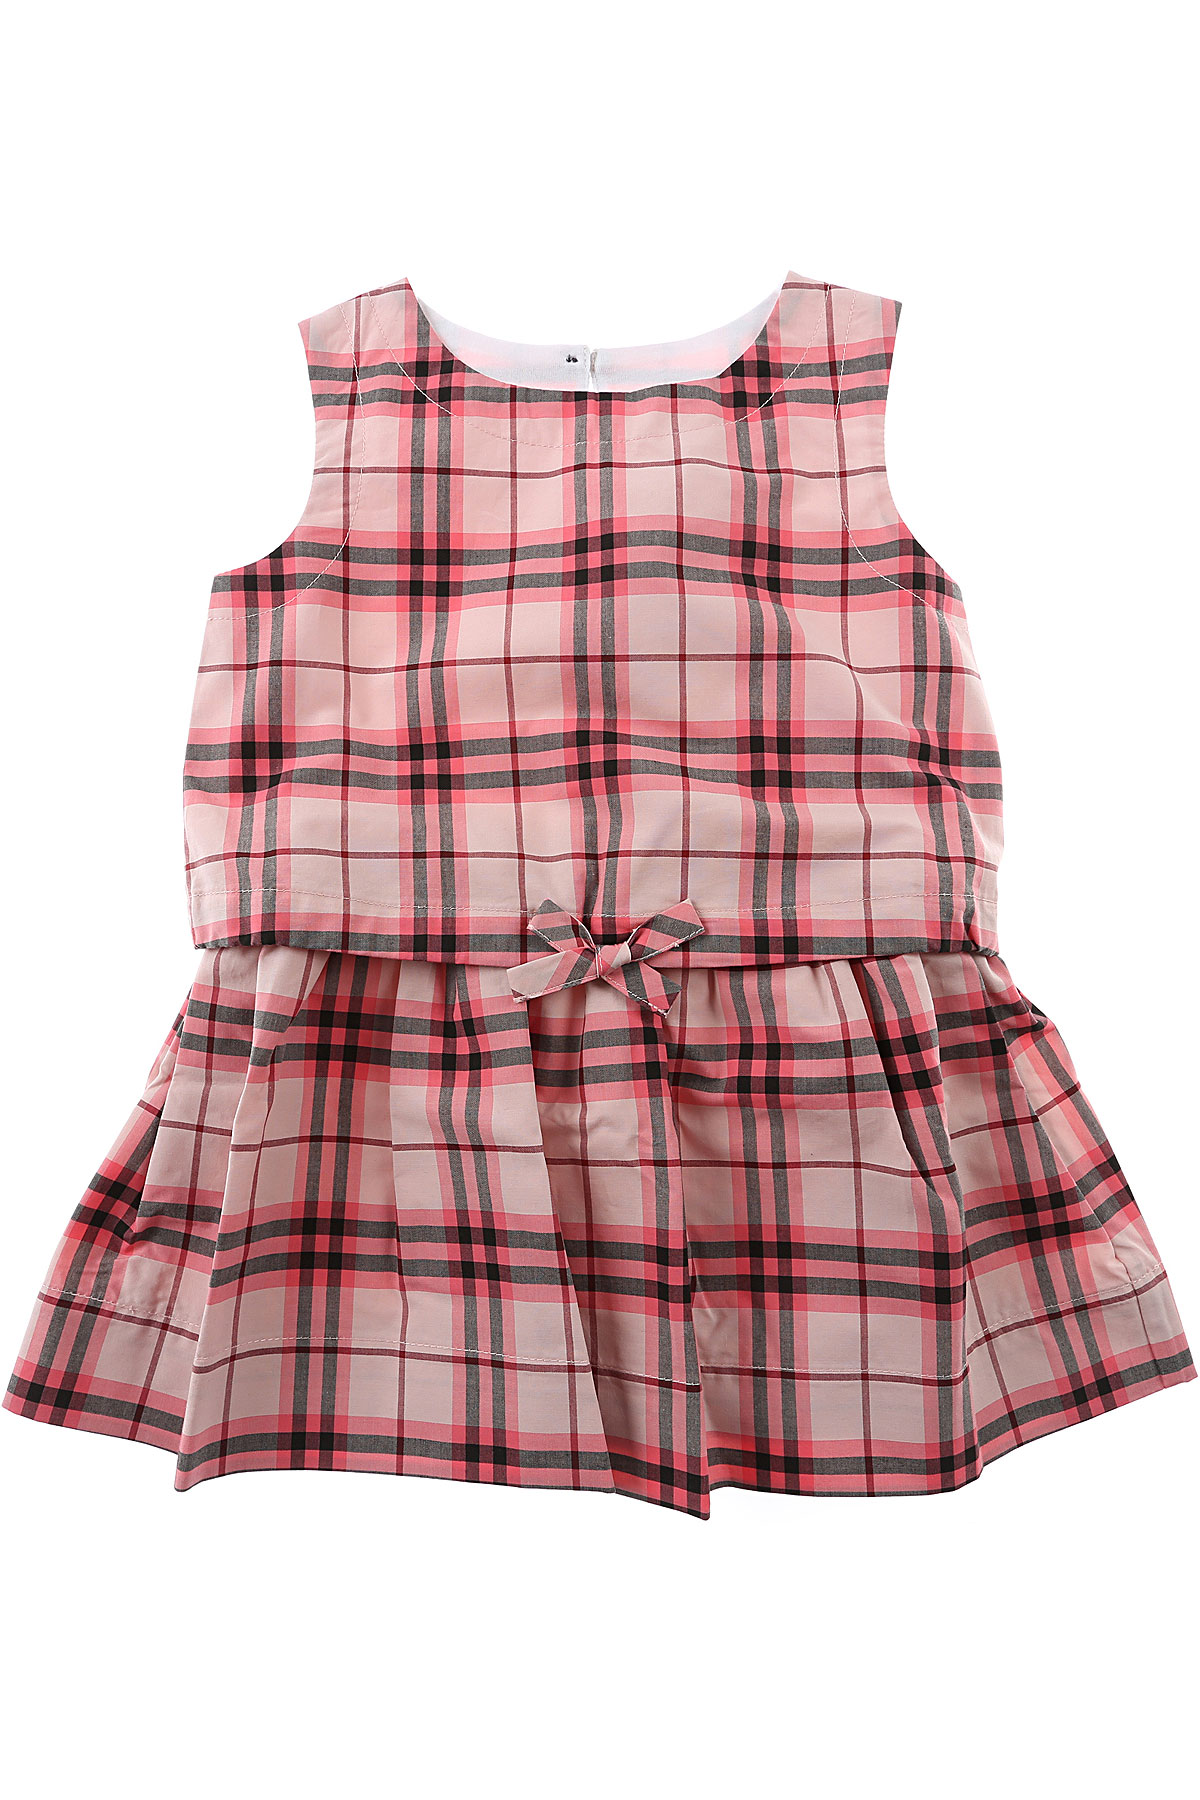 Image of Burberry Baby Dress for Girls On Sale, Bright Rose, Cotton, 2017, 18M 2Y 6M 9M